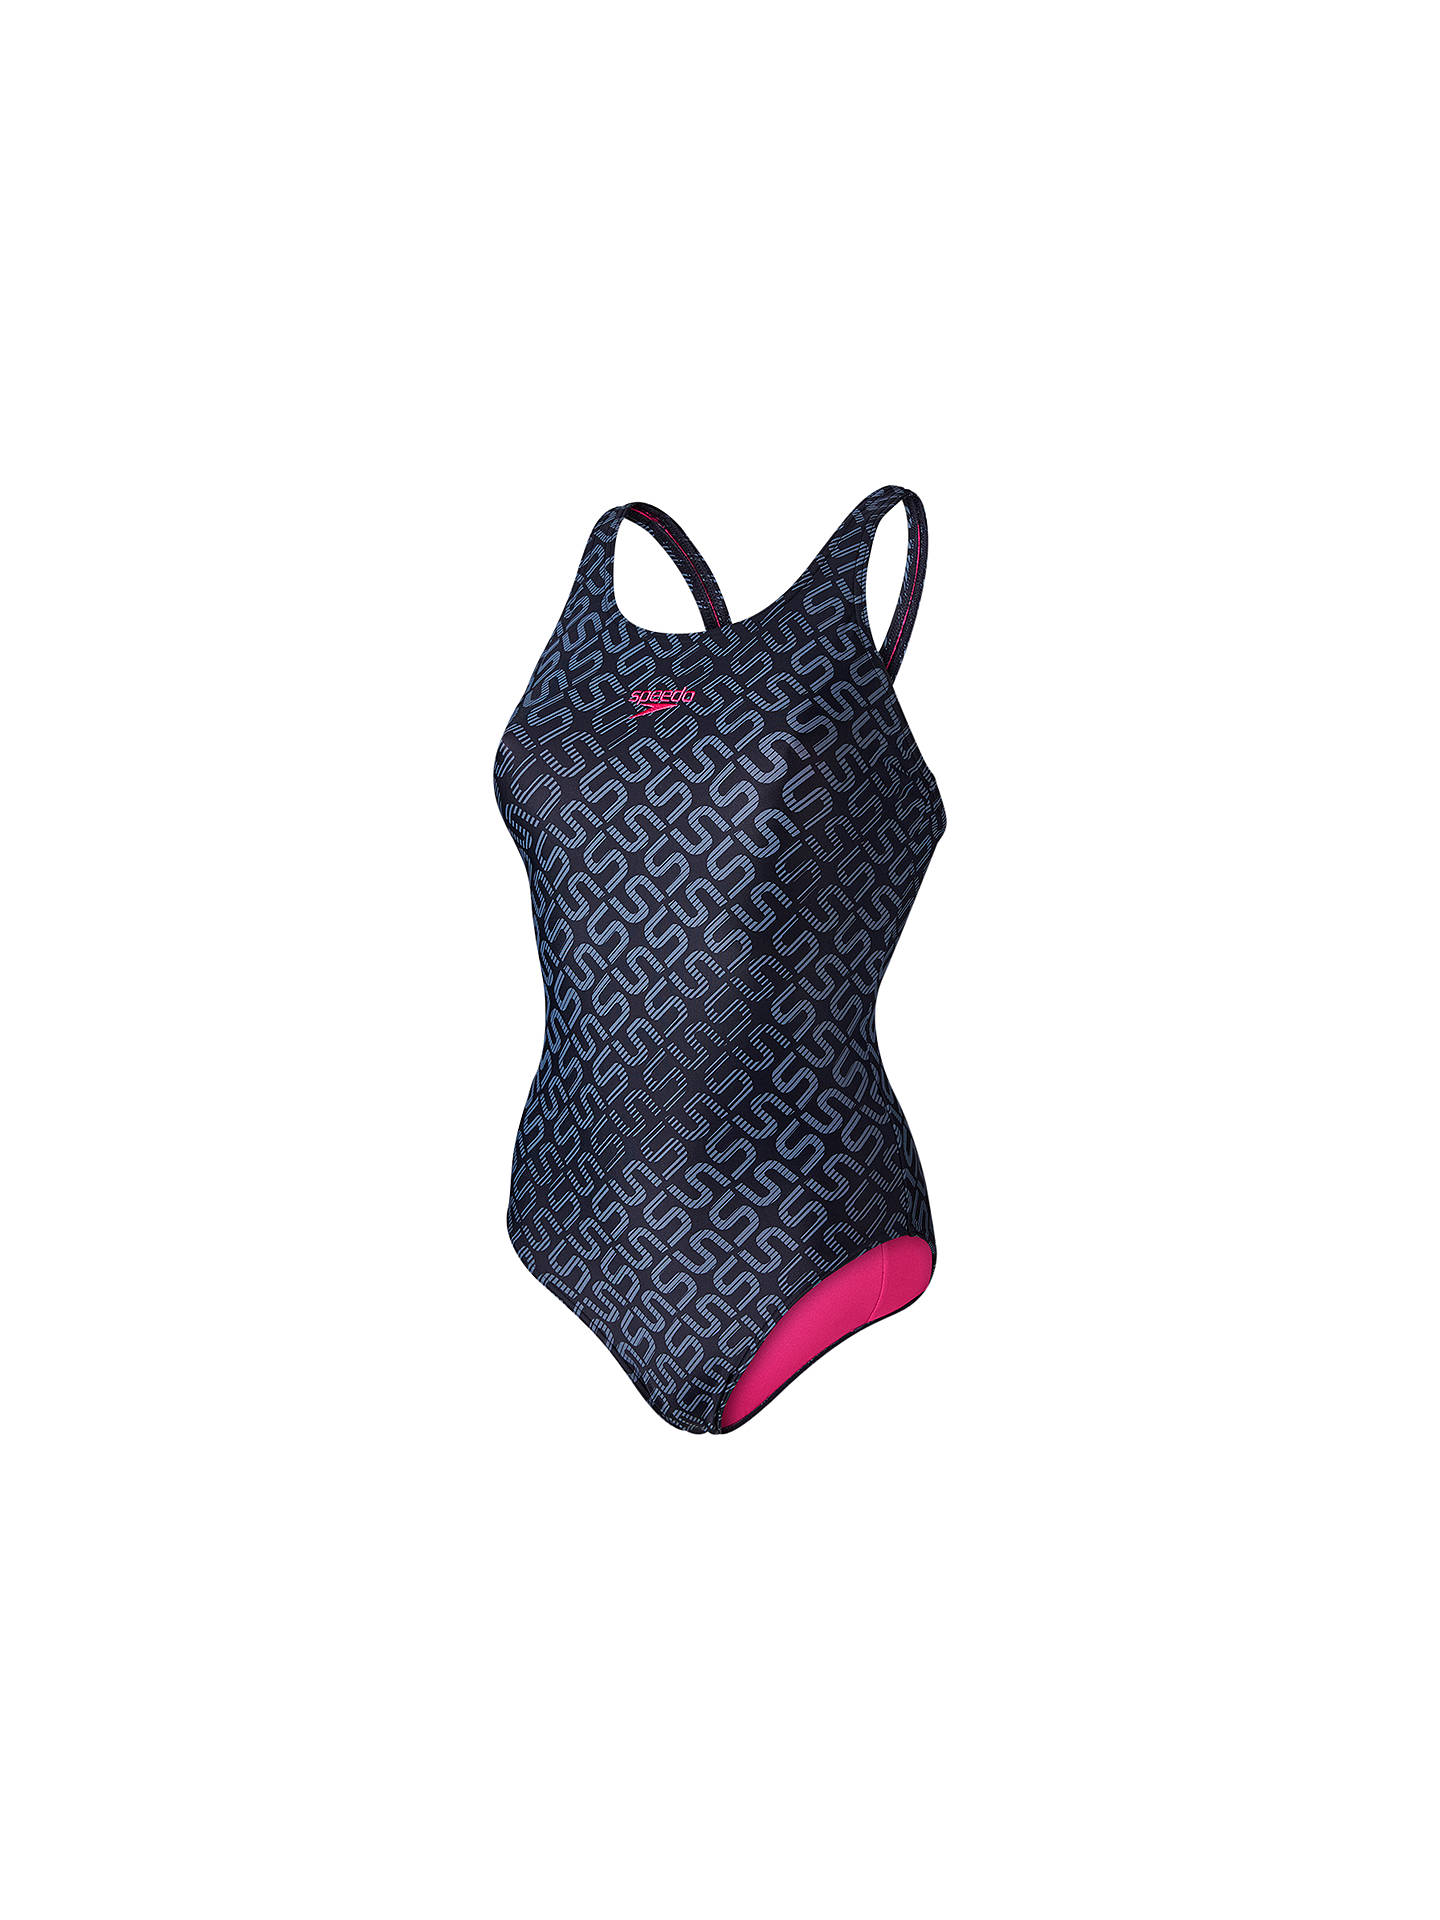 3bda519f99431 Buy Speedo Monogram Allover Muscleback Swimsuit, Black/Grey, 32 Online at  johnlewis.